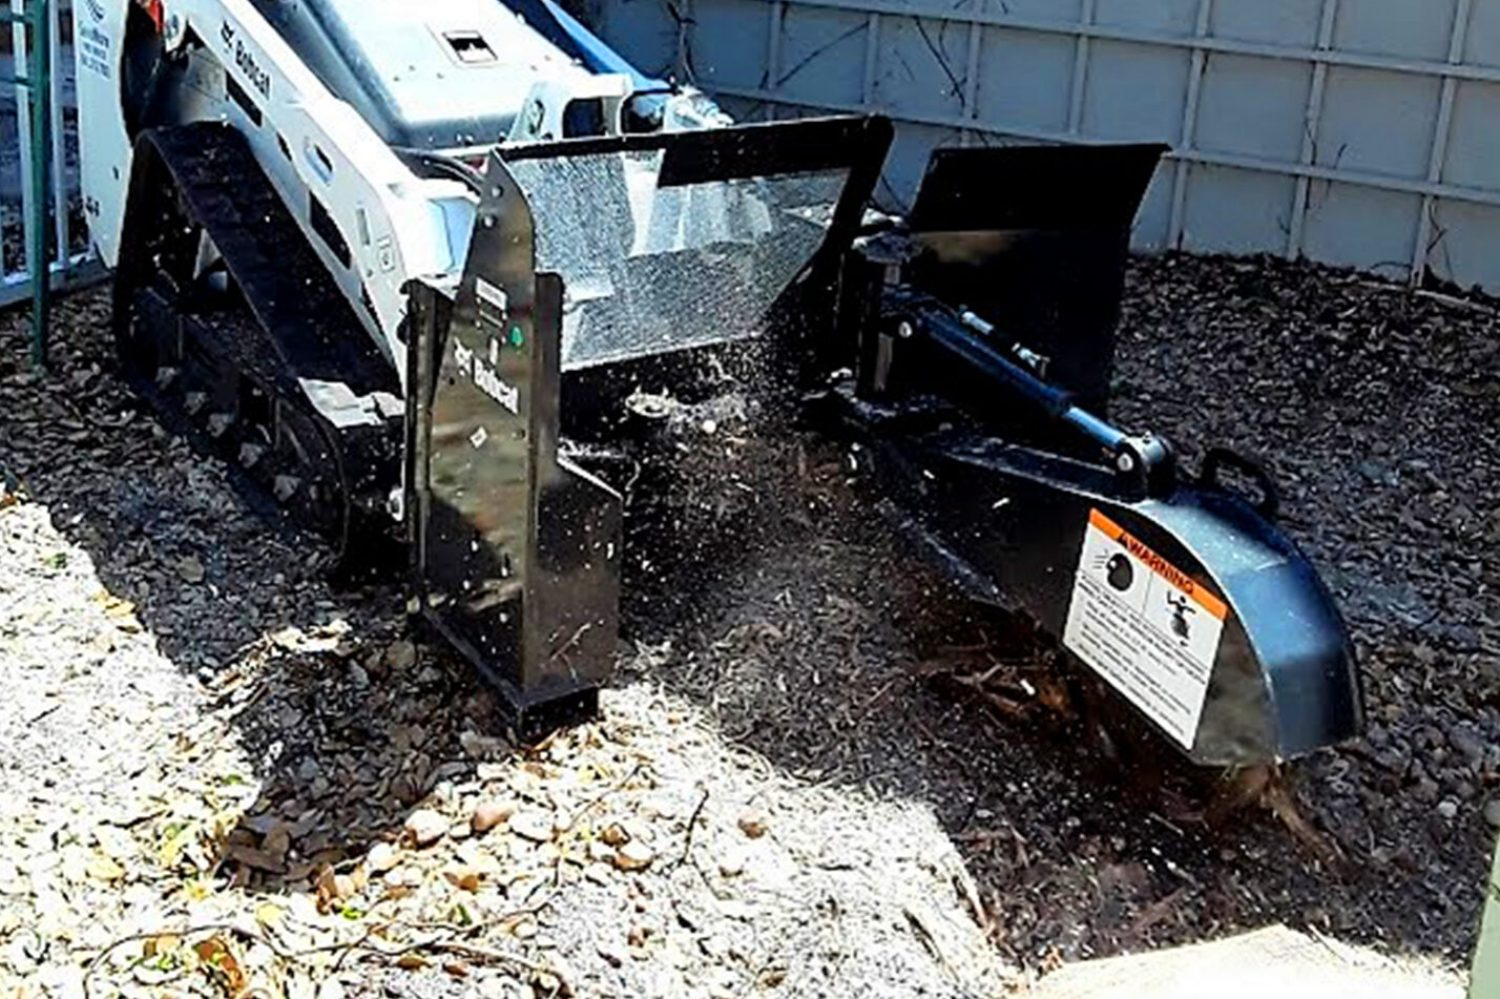 Stump Grinding and Stump Removal Loxahatchee, Royal Palm Beach, Wellington, FL - SaveMore Tree Service